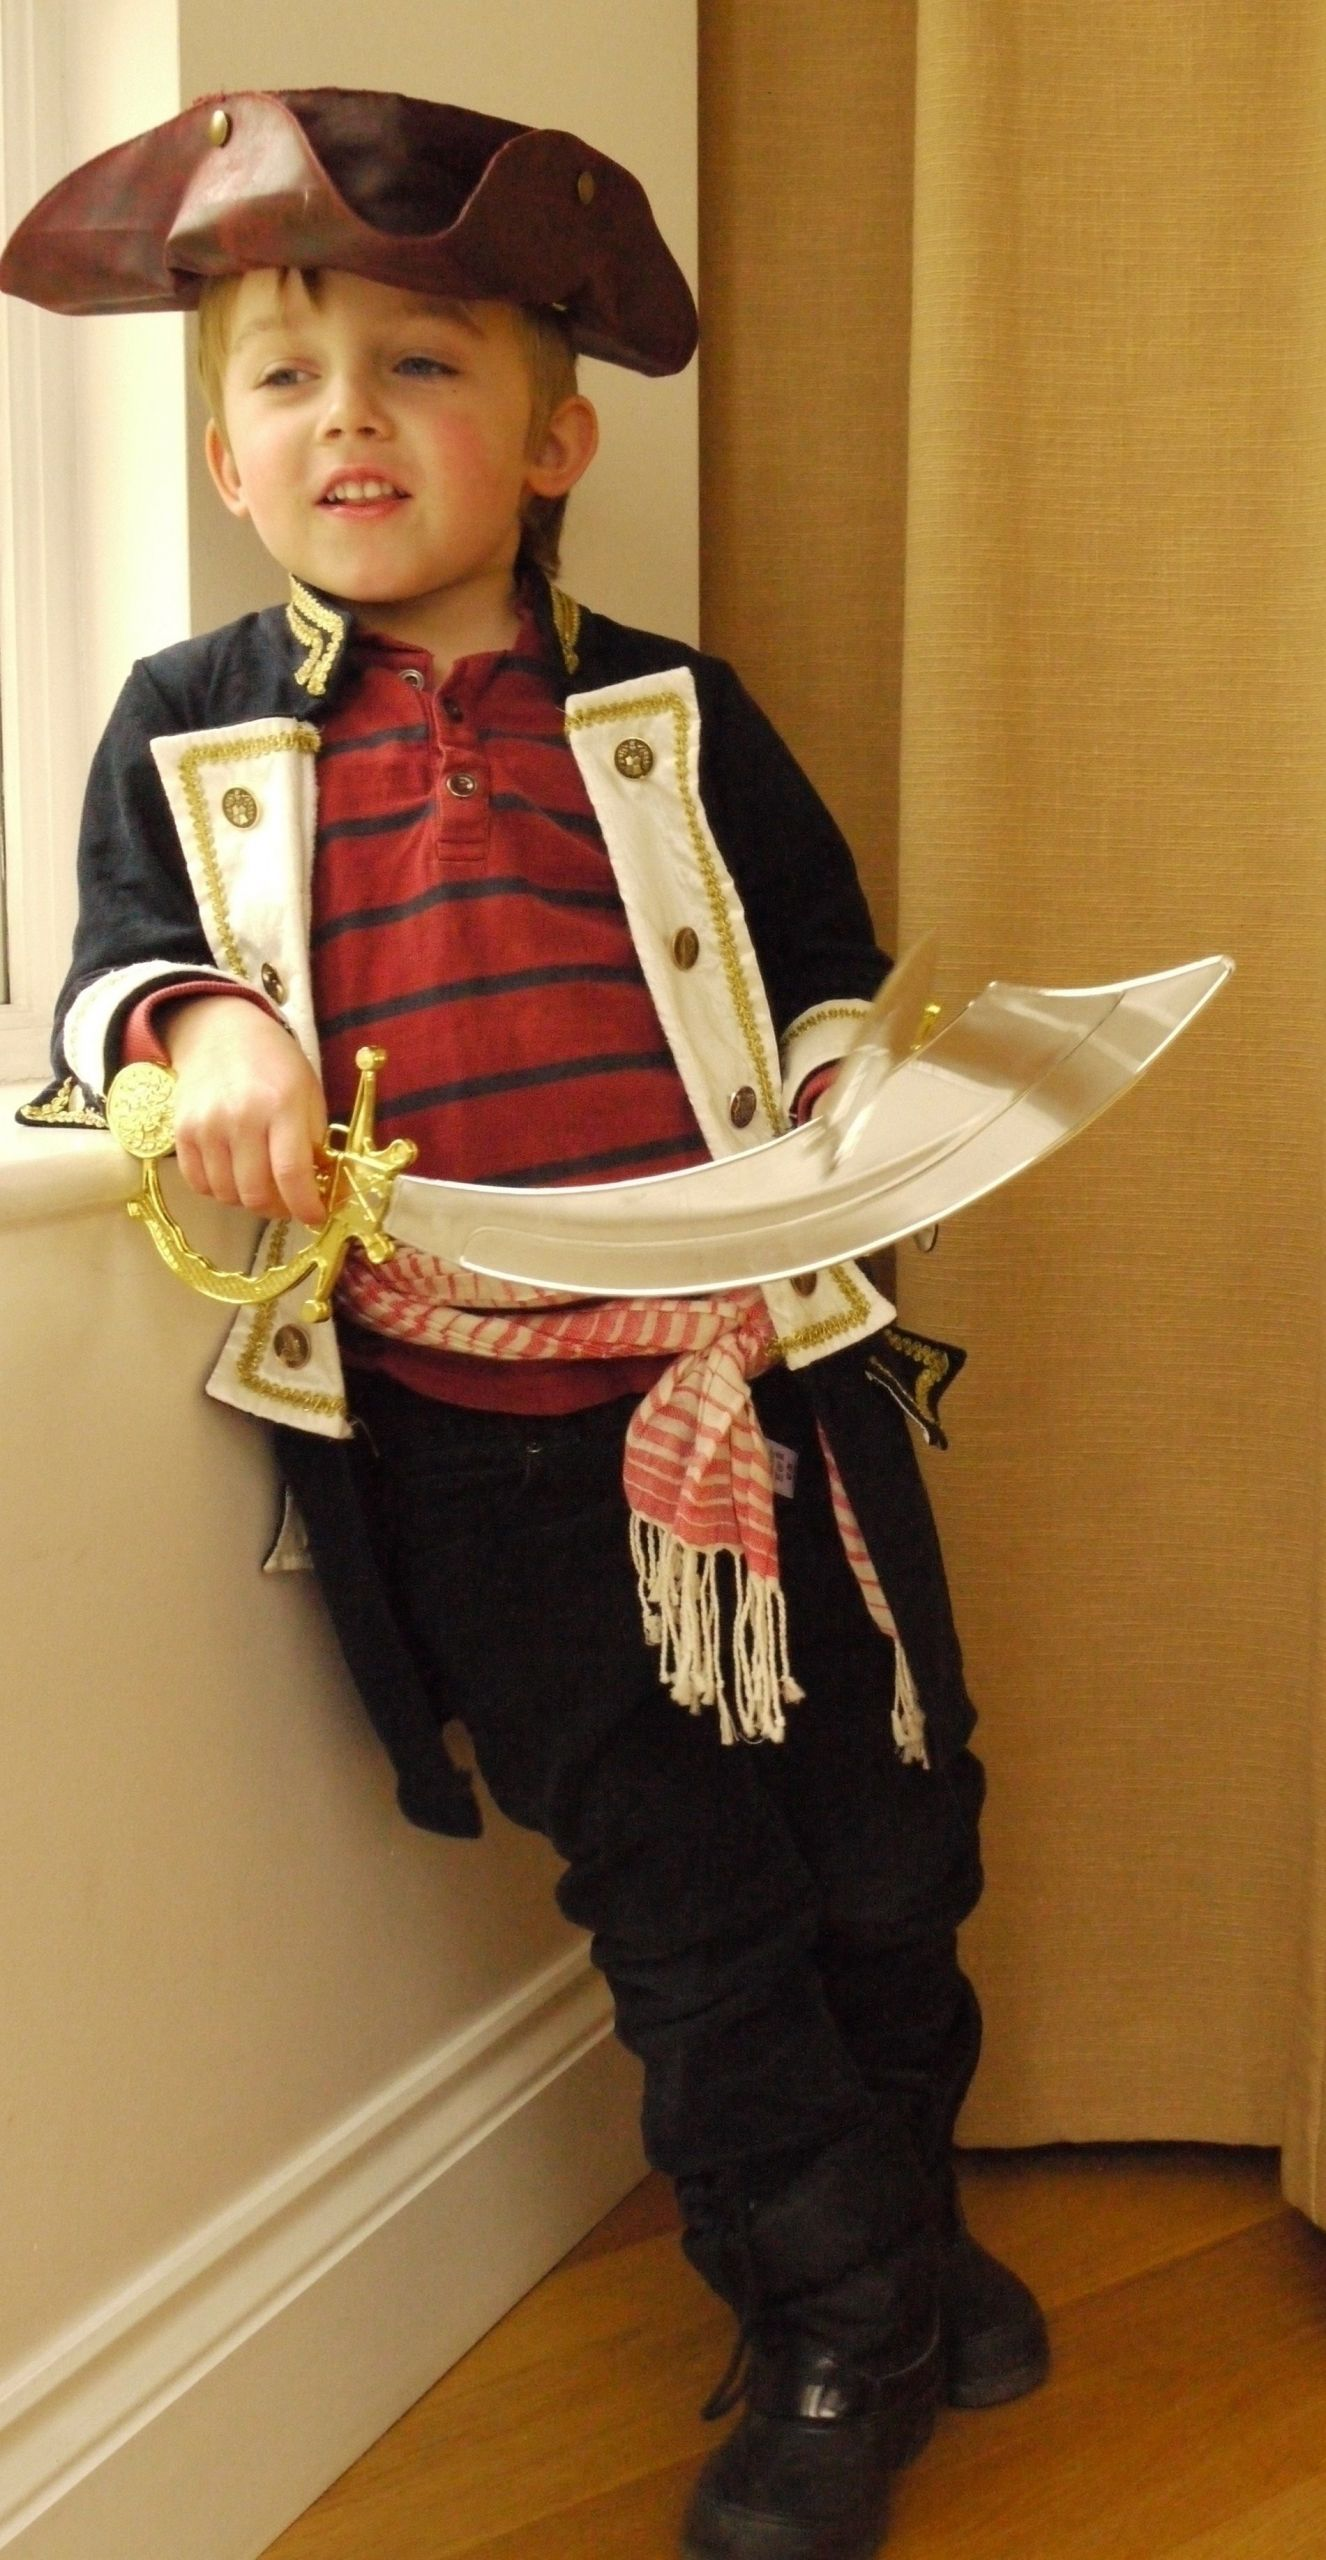 DIY Pirate Costumes For Kids  10 Attractive Homemade Pirate Costume Ideas For Kids 2019